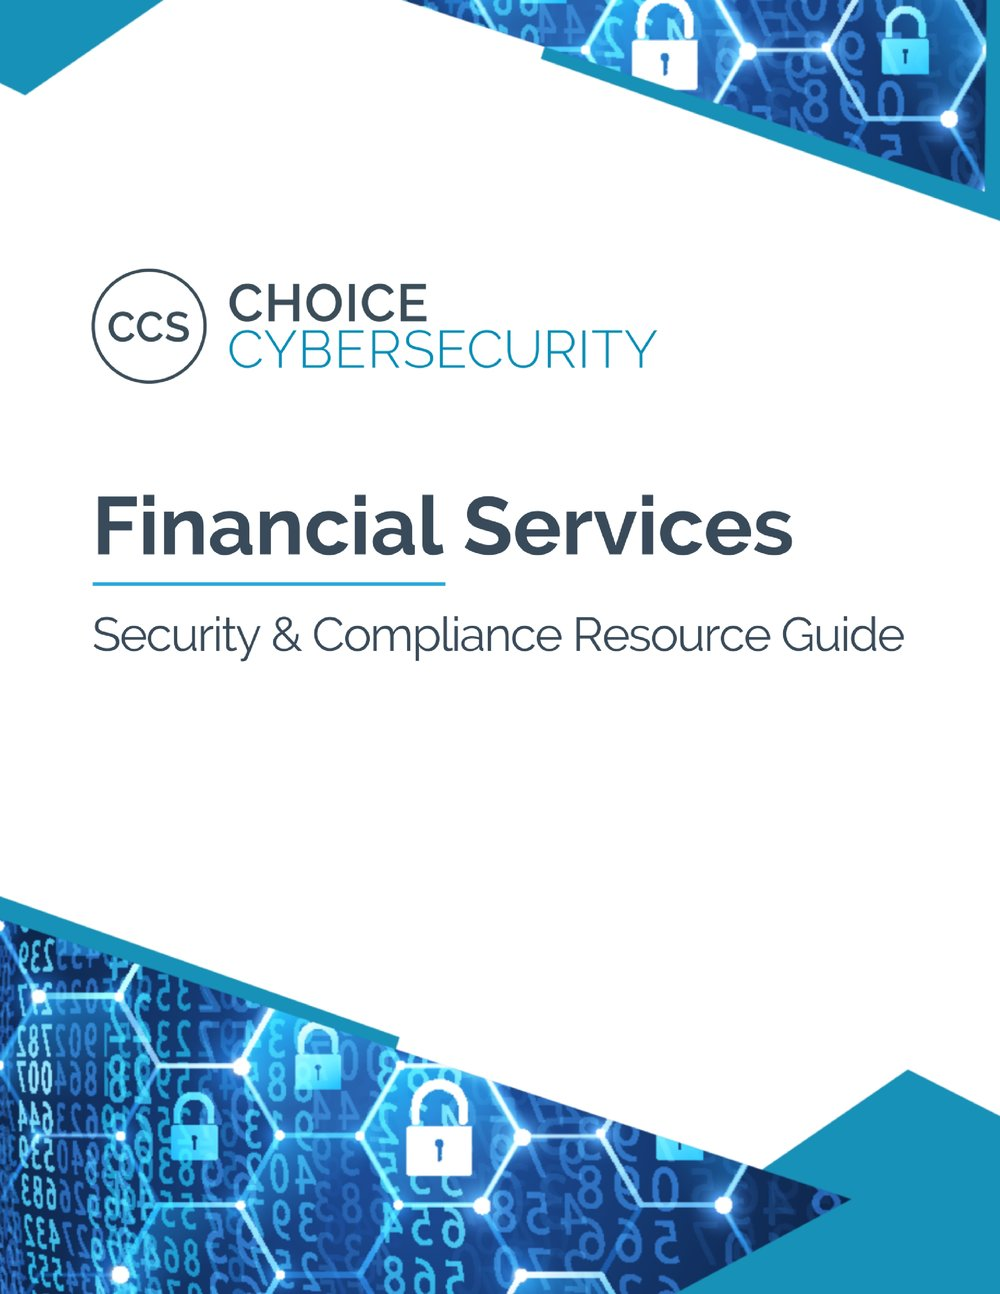 Copy of FINANCIAL SERVICES (3).jpg